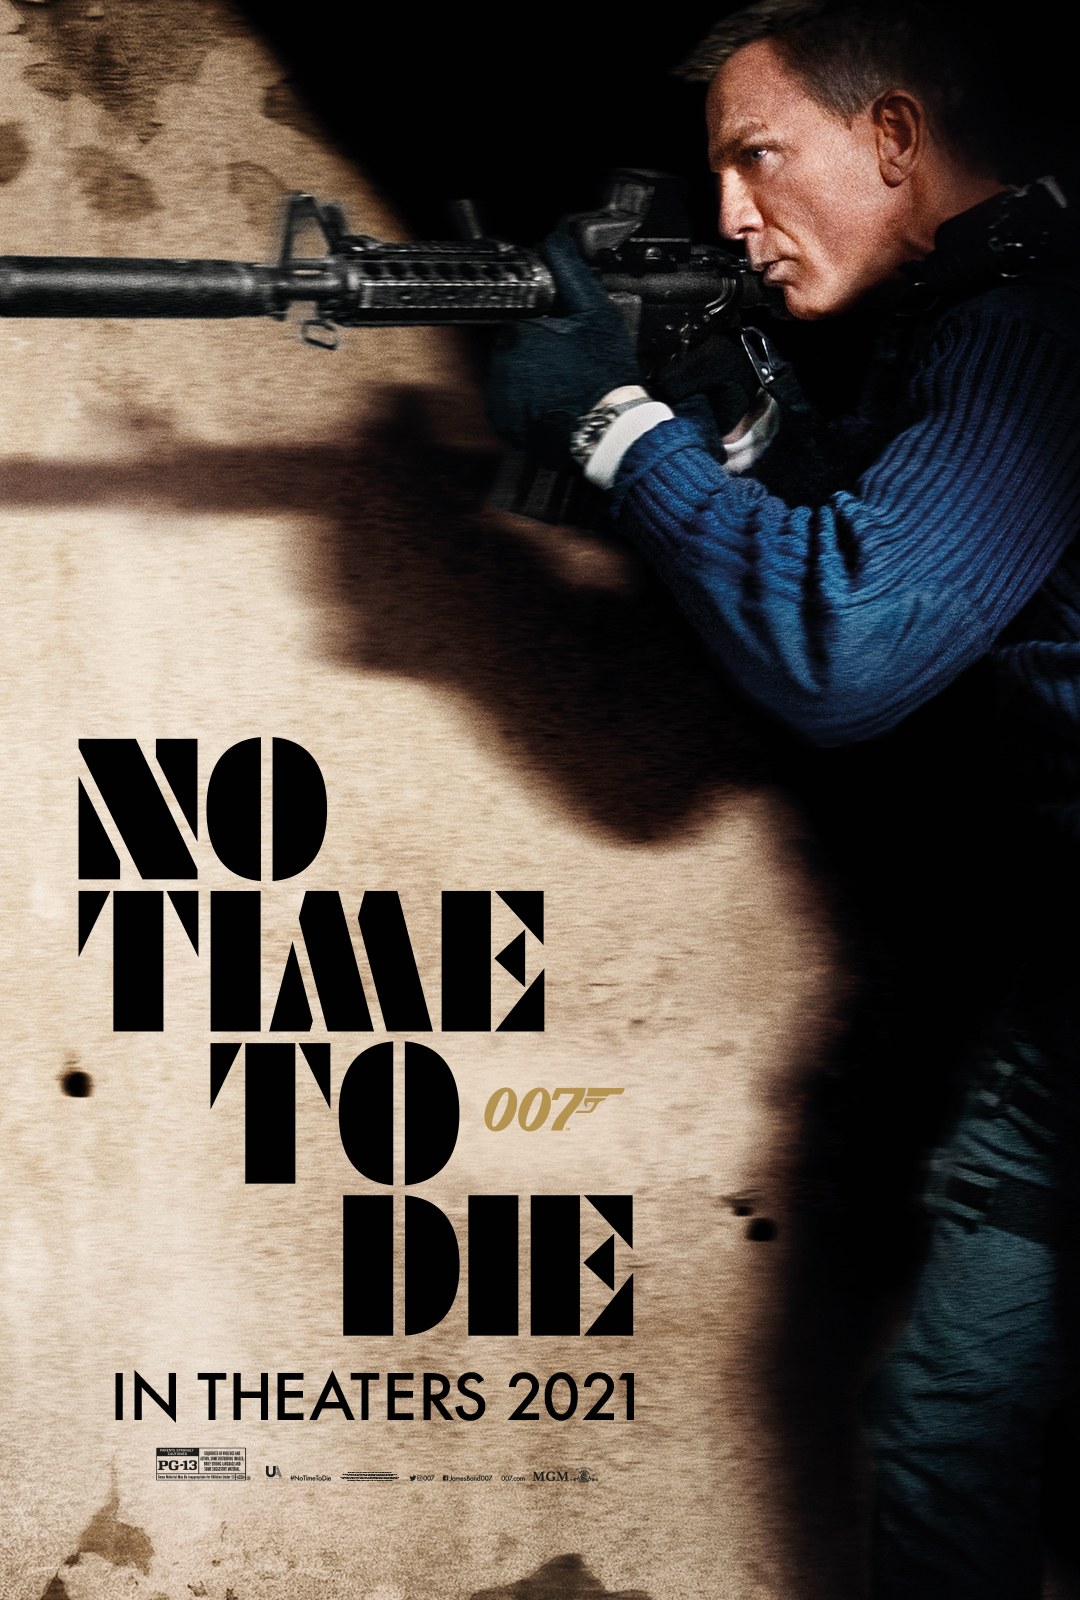 No Time to Die movie poster of Daniel Craig's profile as he is holding a gun